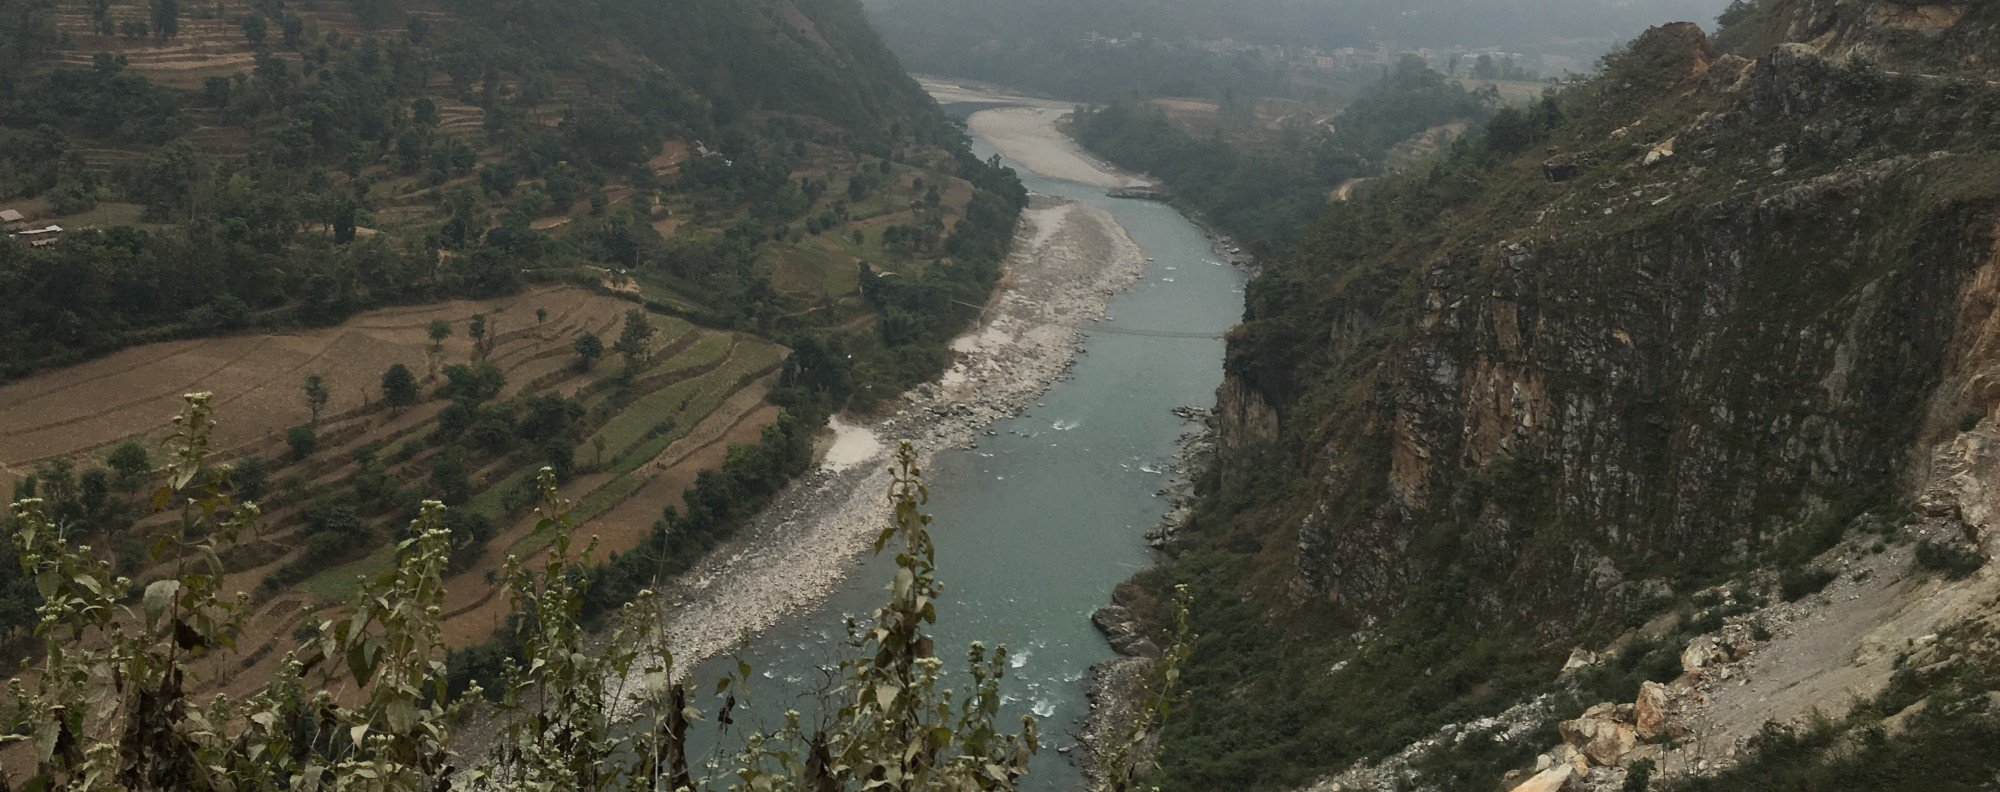 Site for the proposed Budhi Gandaki Hydropower Project in Nepal.